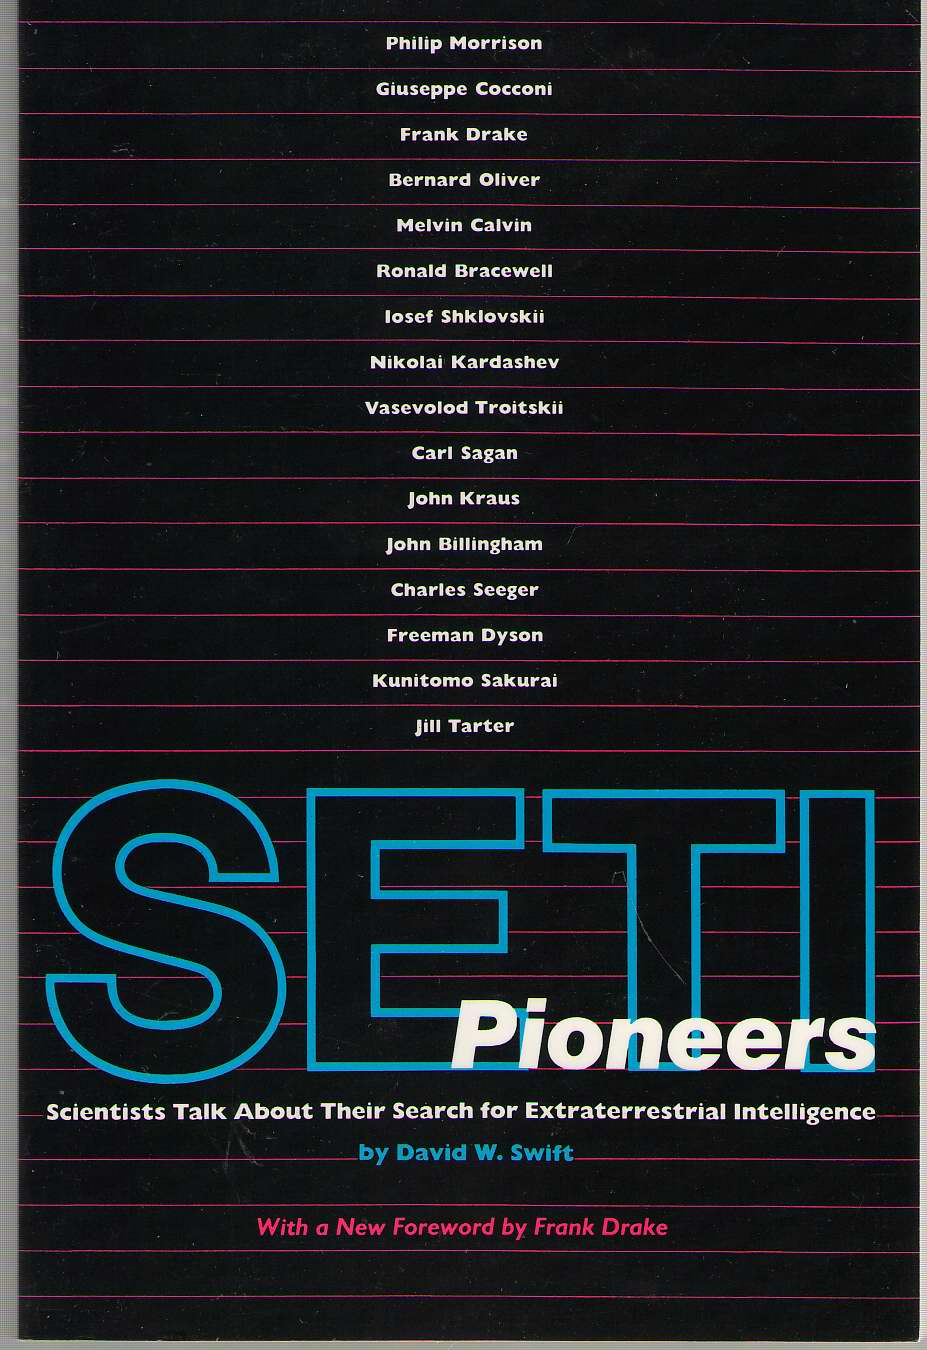 Image for Seti Pioneers Scientists Talk about Their Search for Extraterrestrial Intelligence